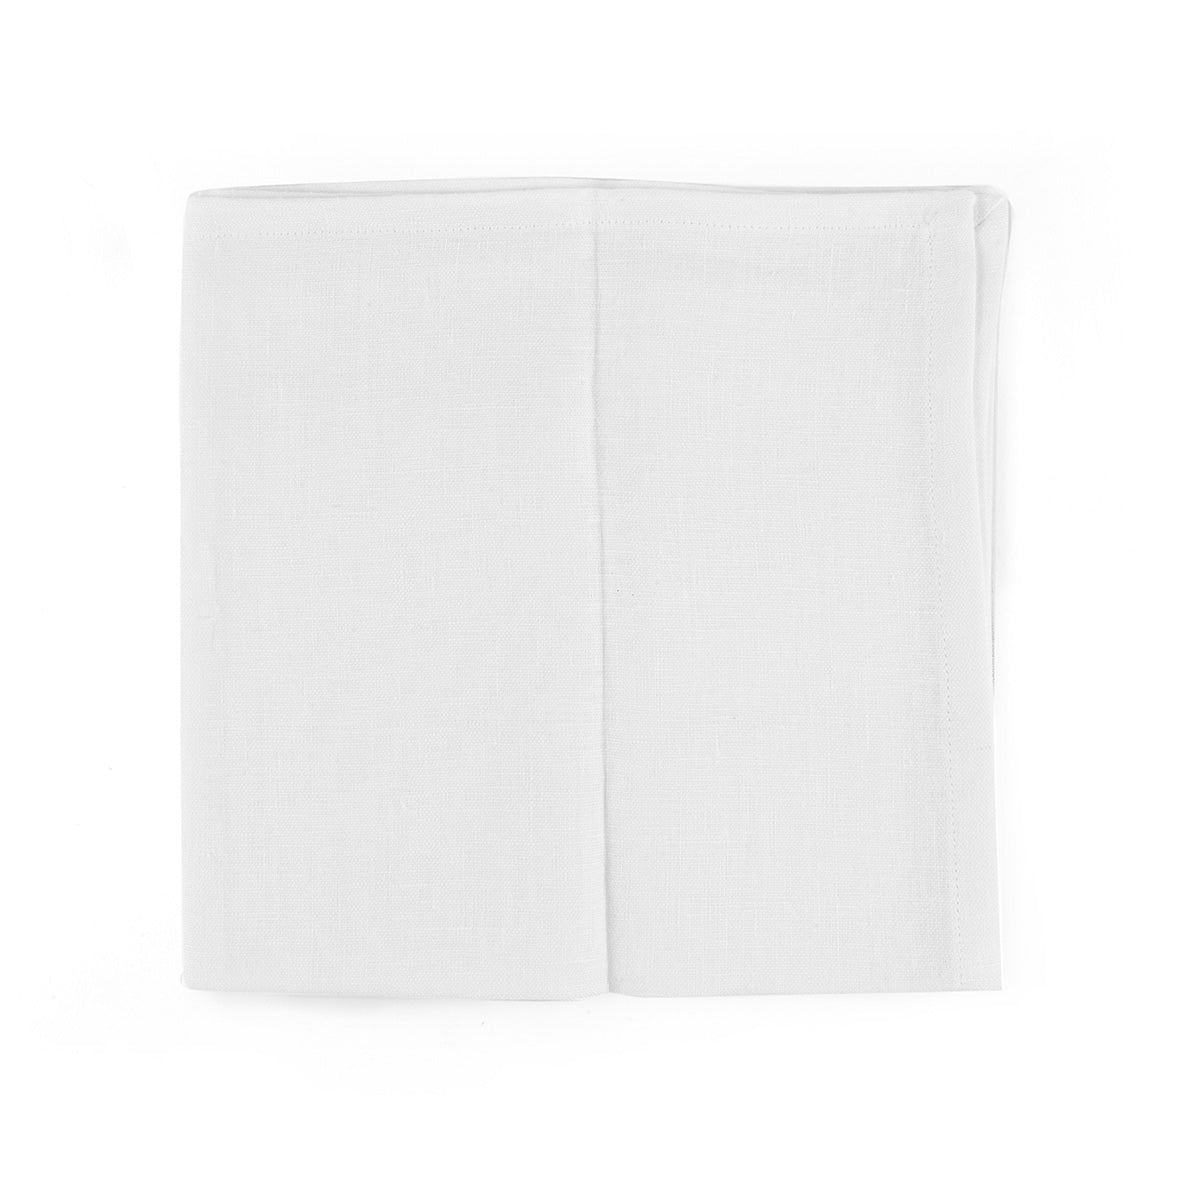 Set of 4 White Linen Napkins Freyr and Fell - Artisan - Made By Hand | Slow Living - Natural Materials - Pure Linen